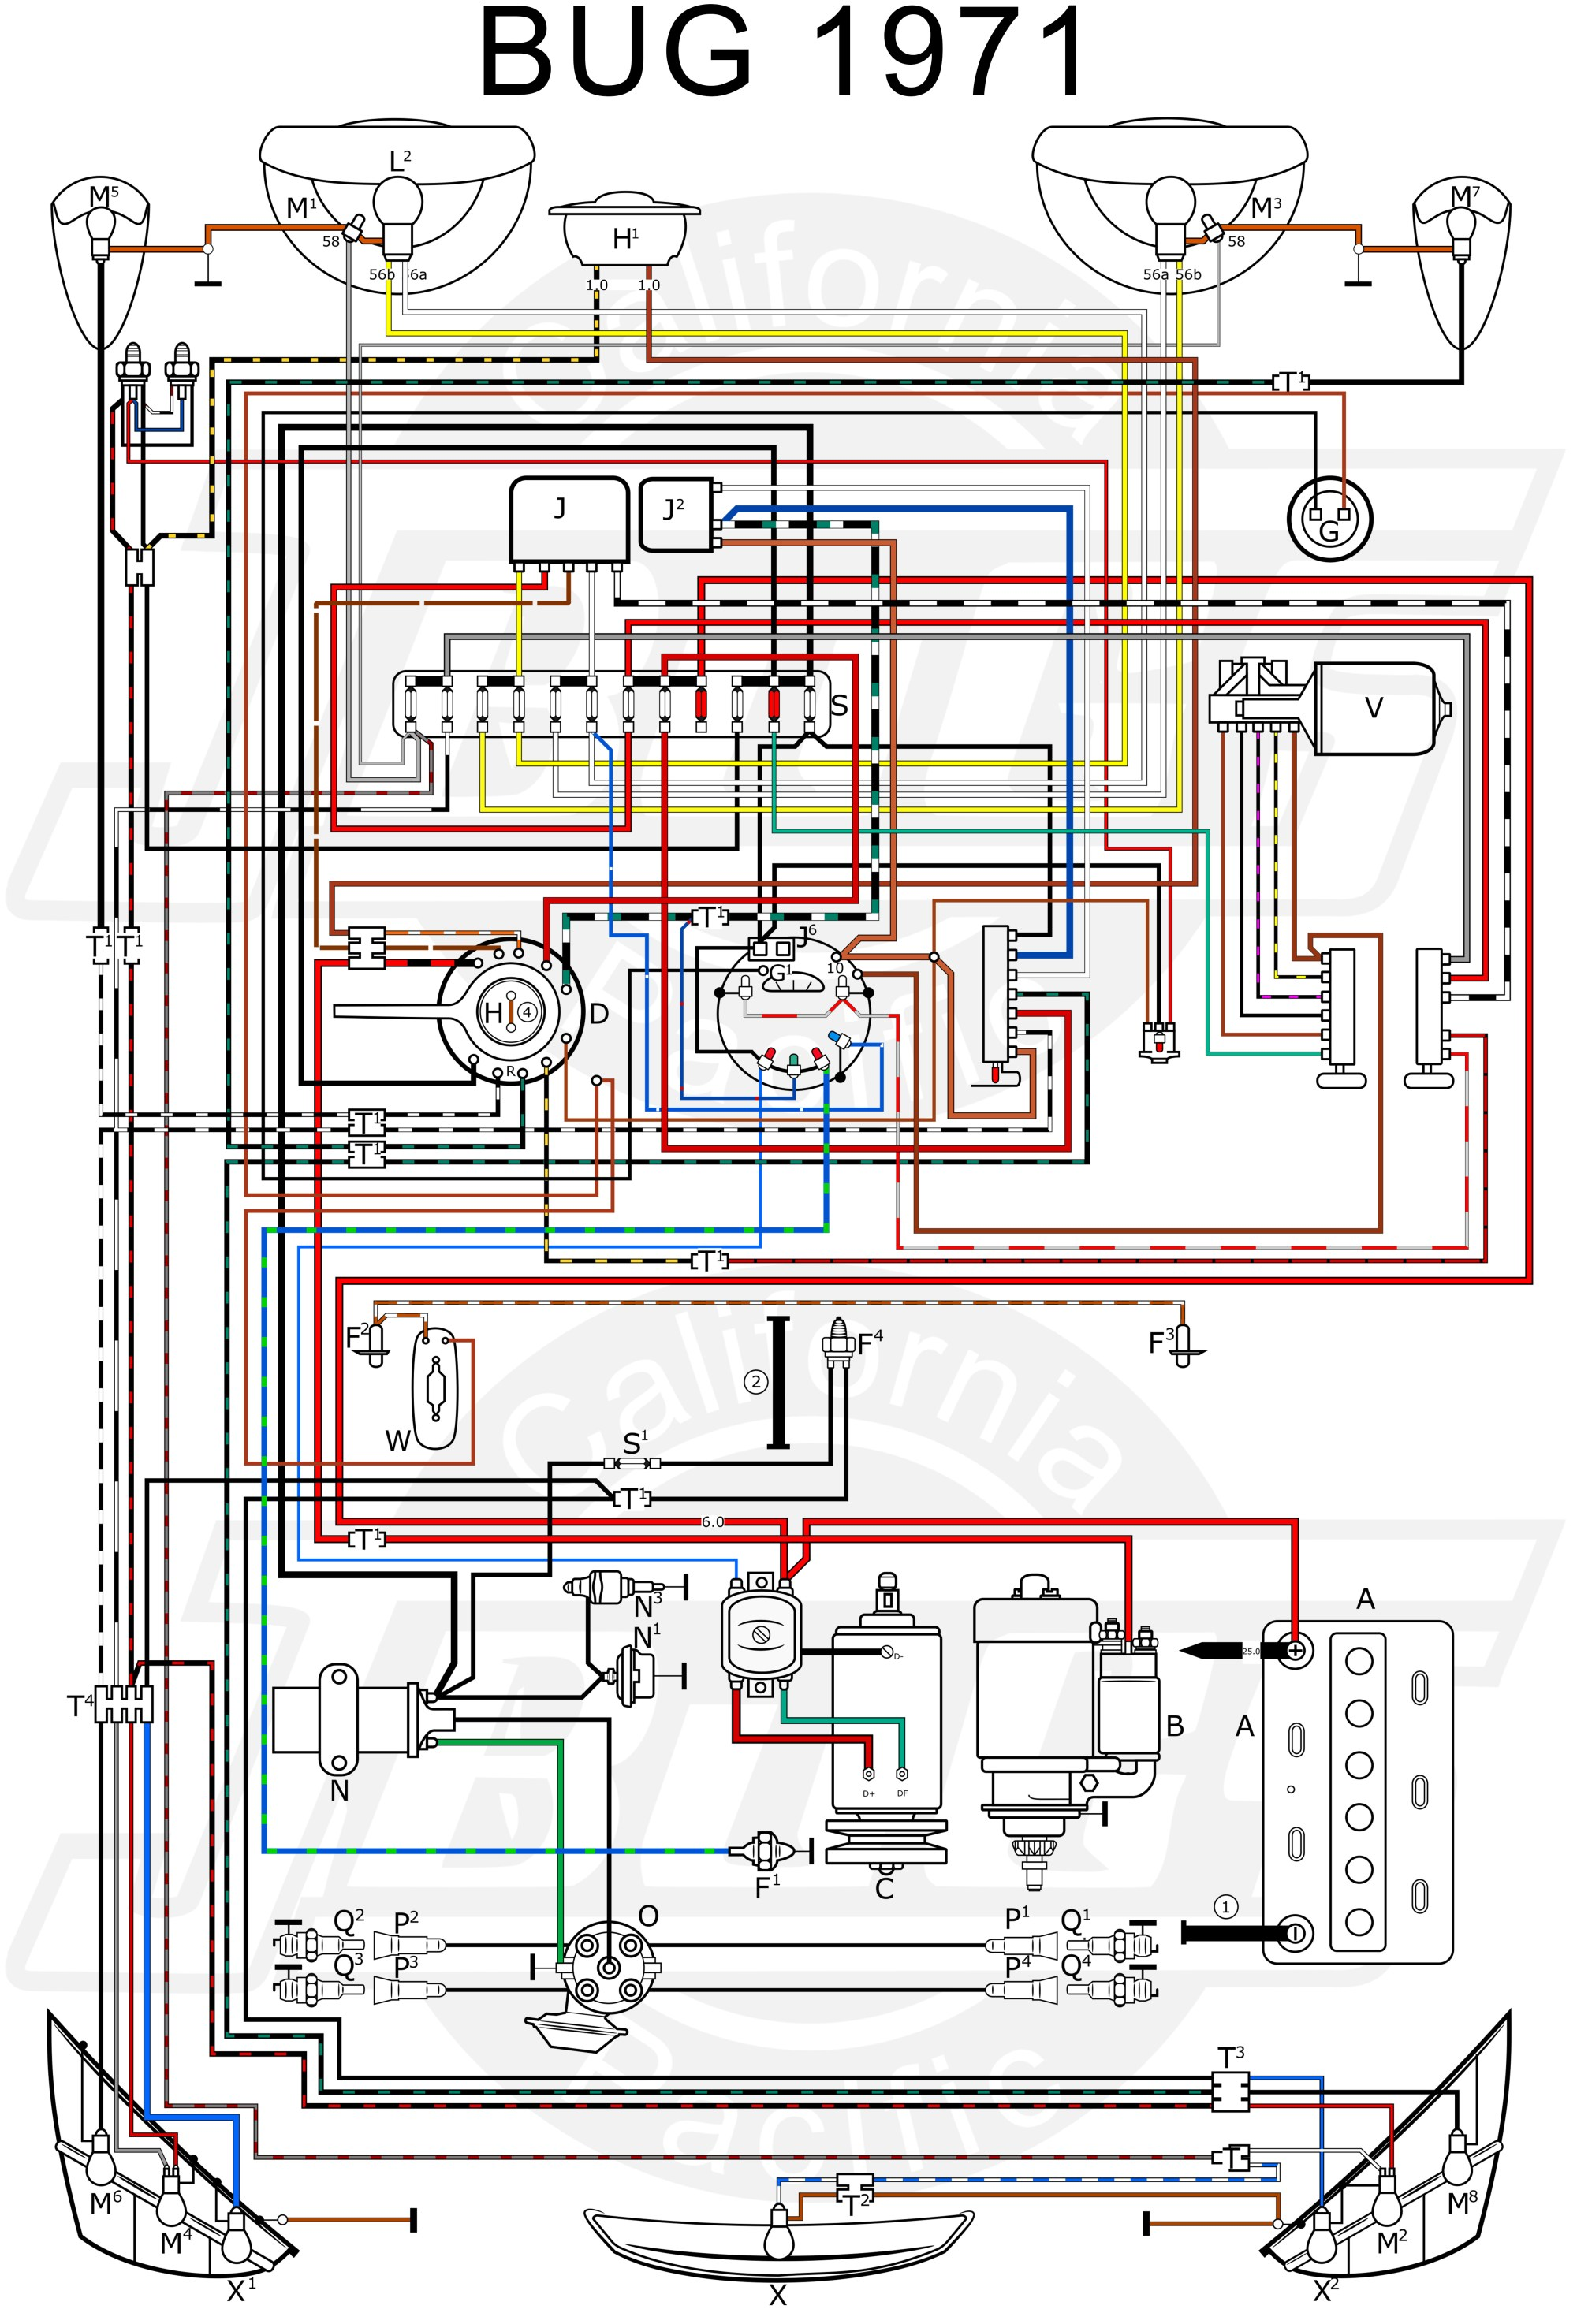 hight resolution of subaru ignition coil wiring diagram wiring diagram post subaru ignition coil wiring diagram wiring library 1971